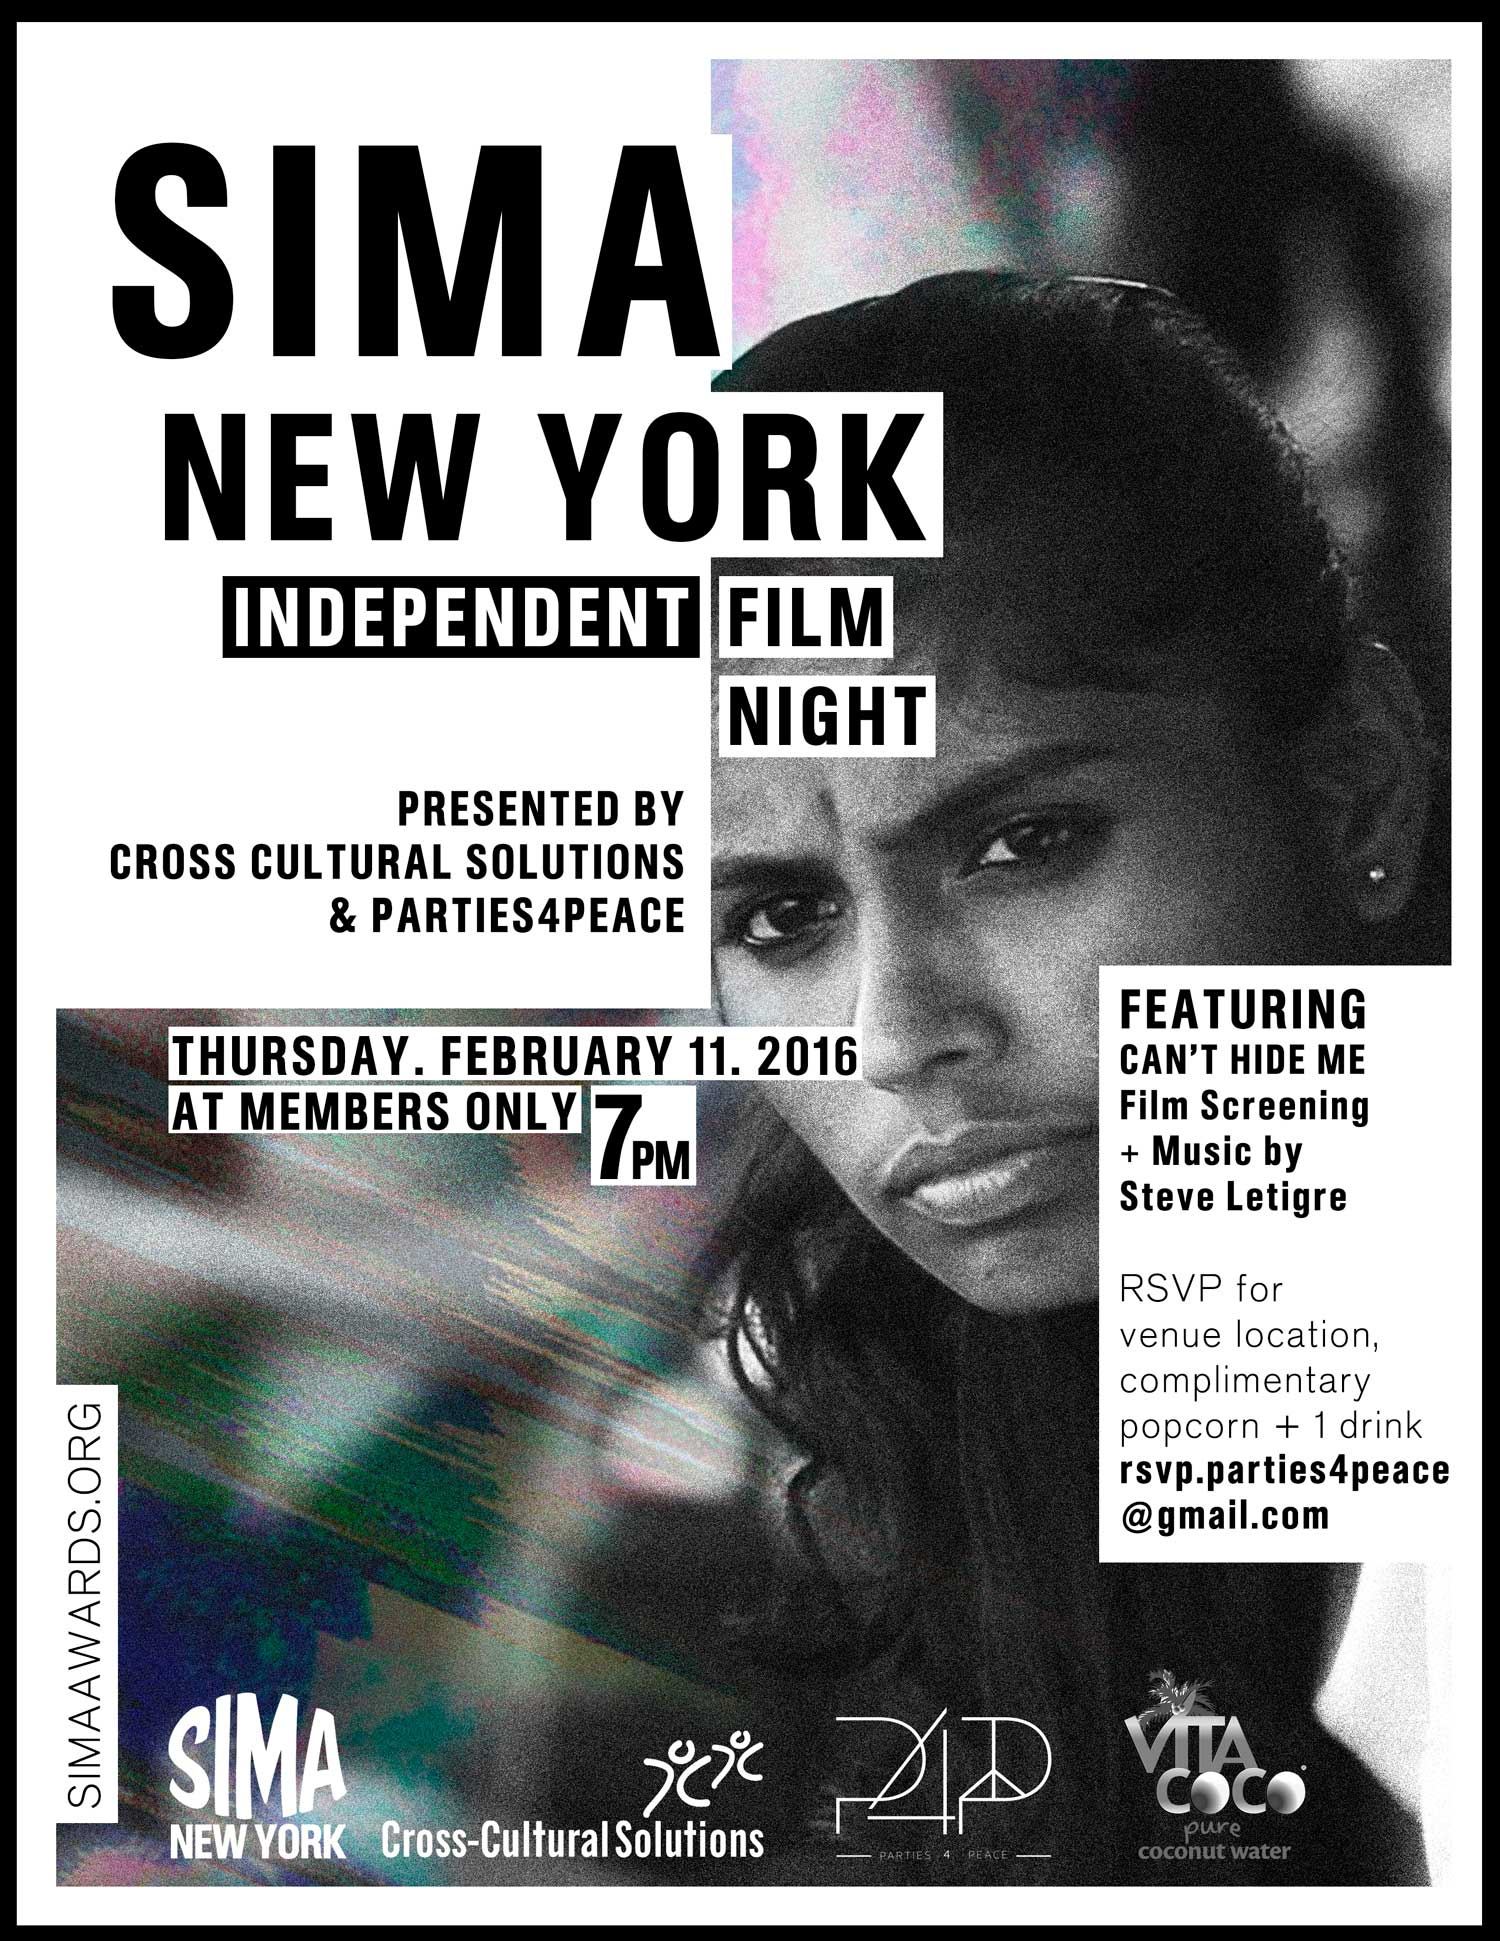 SIMA-NEW-YORK_CCS-POSTER_FOR-WEB.jpg